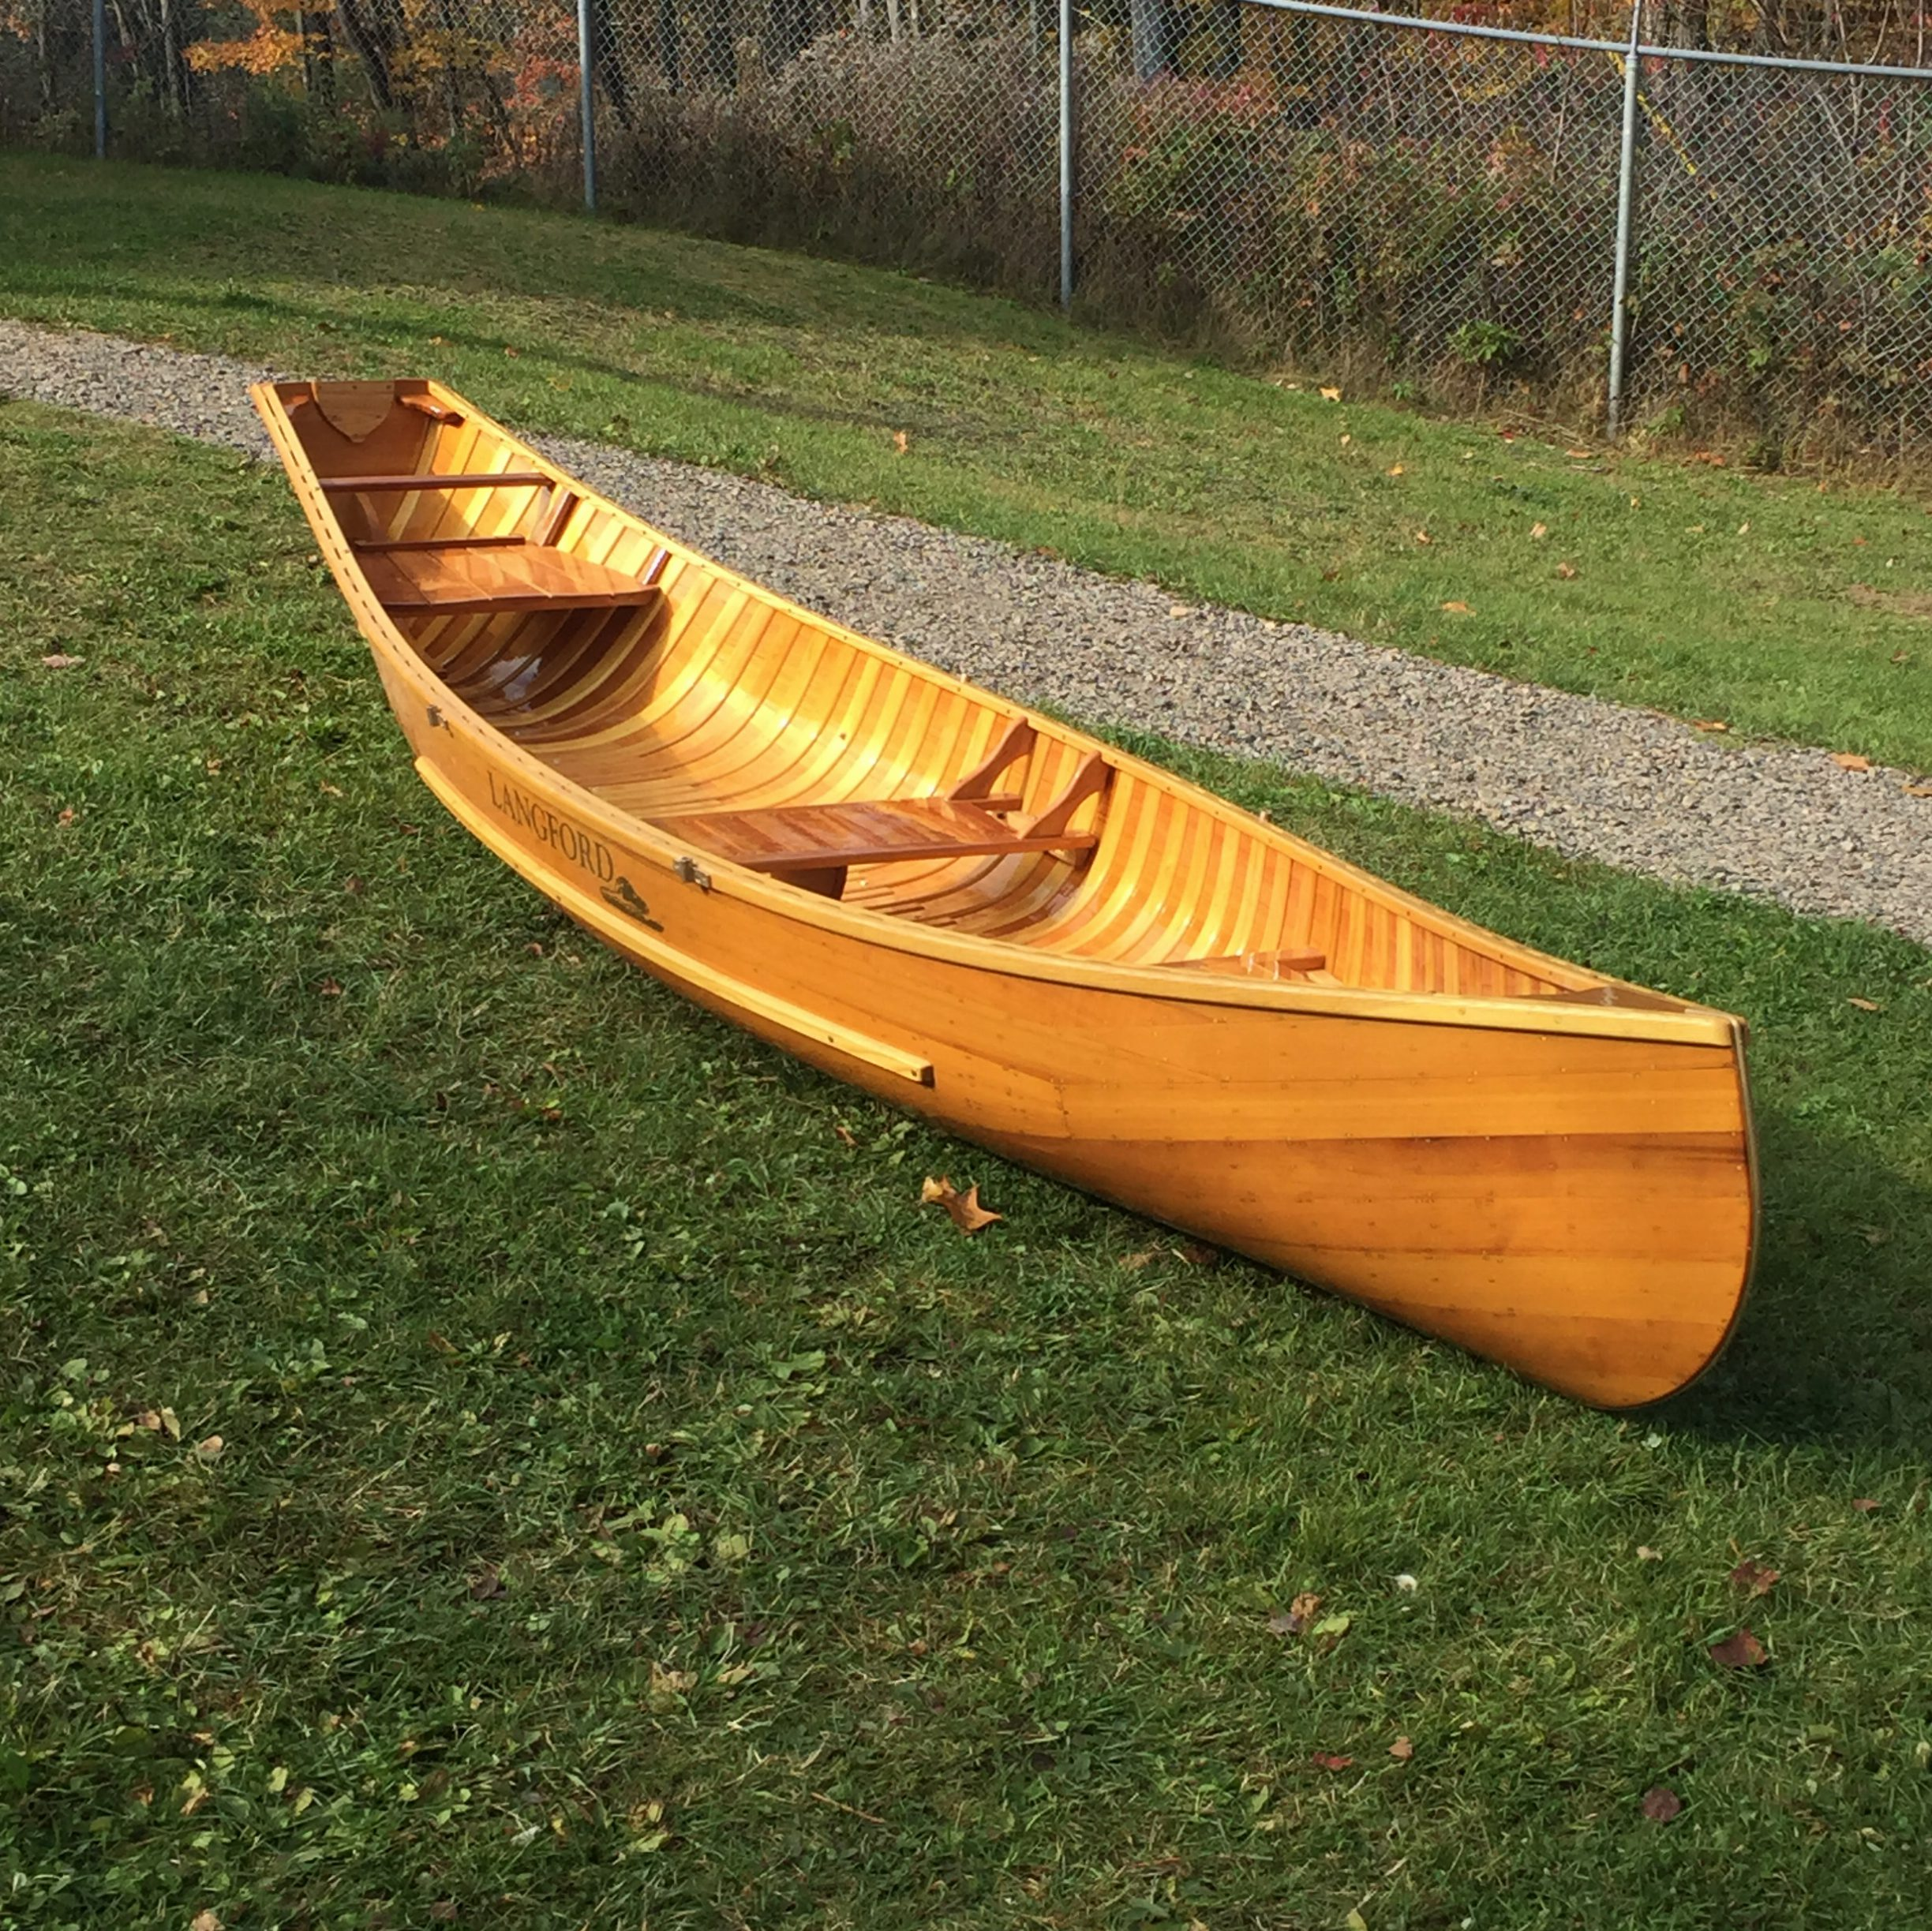 Classic Wood - Langford Canoe - Let the Journey Begin